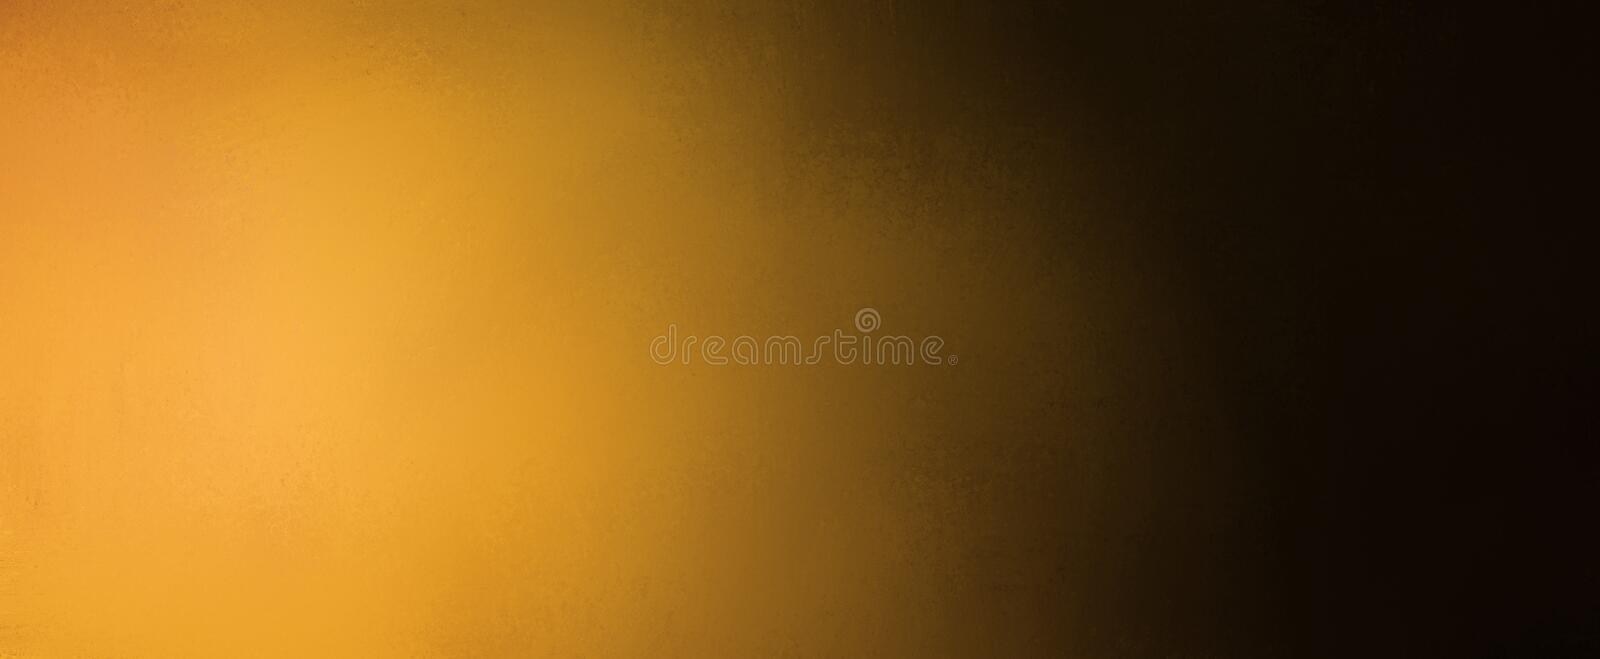 Abstract background with gradient gold and black colors with blurred texture, elegant dark and light background. Design stock illustration